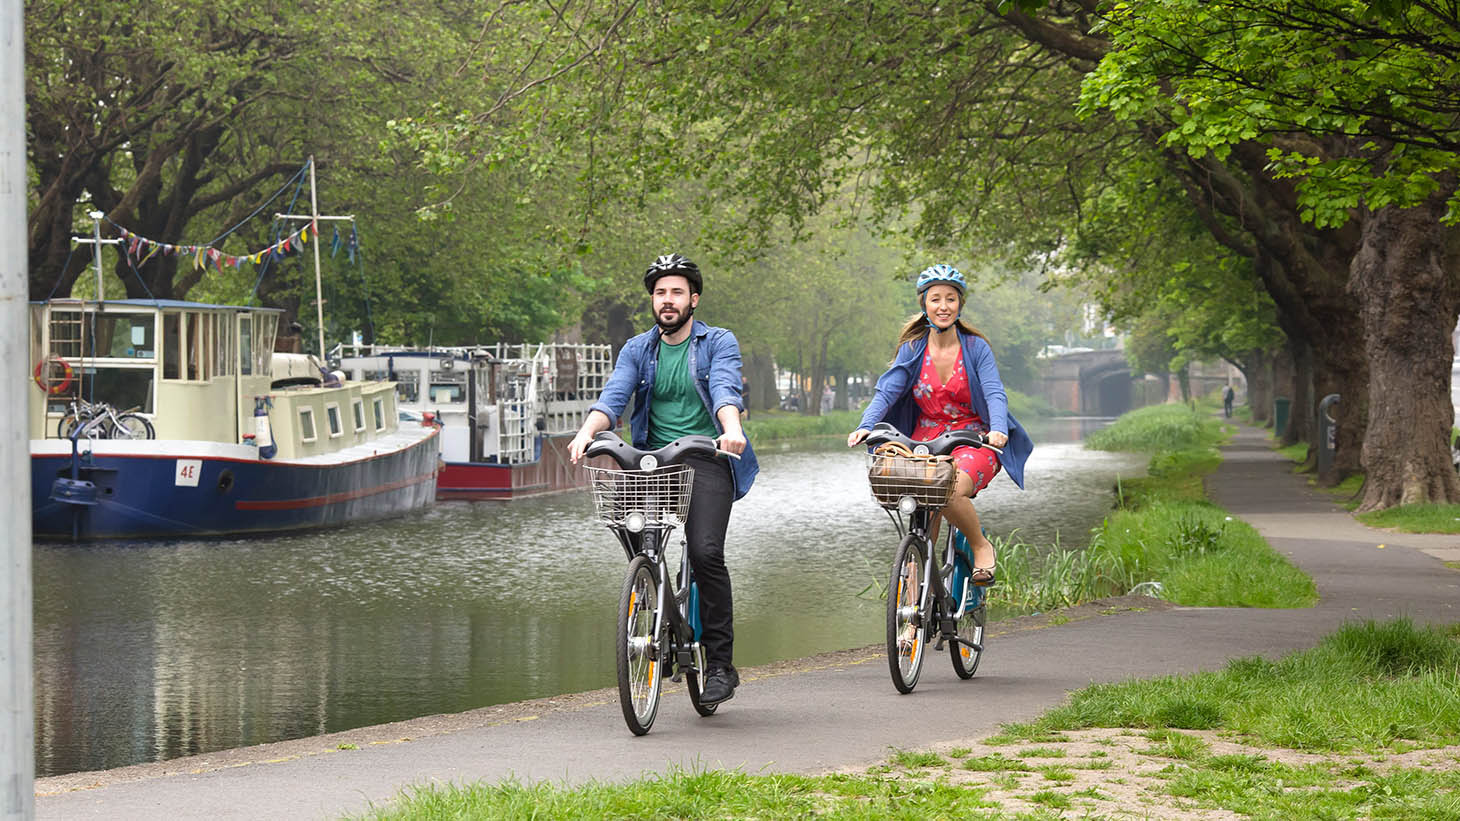 Hire a bike and travel around the city.